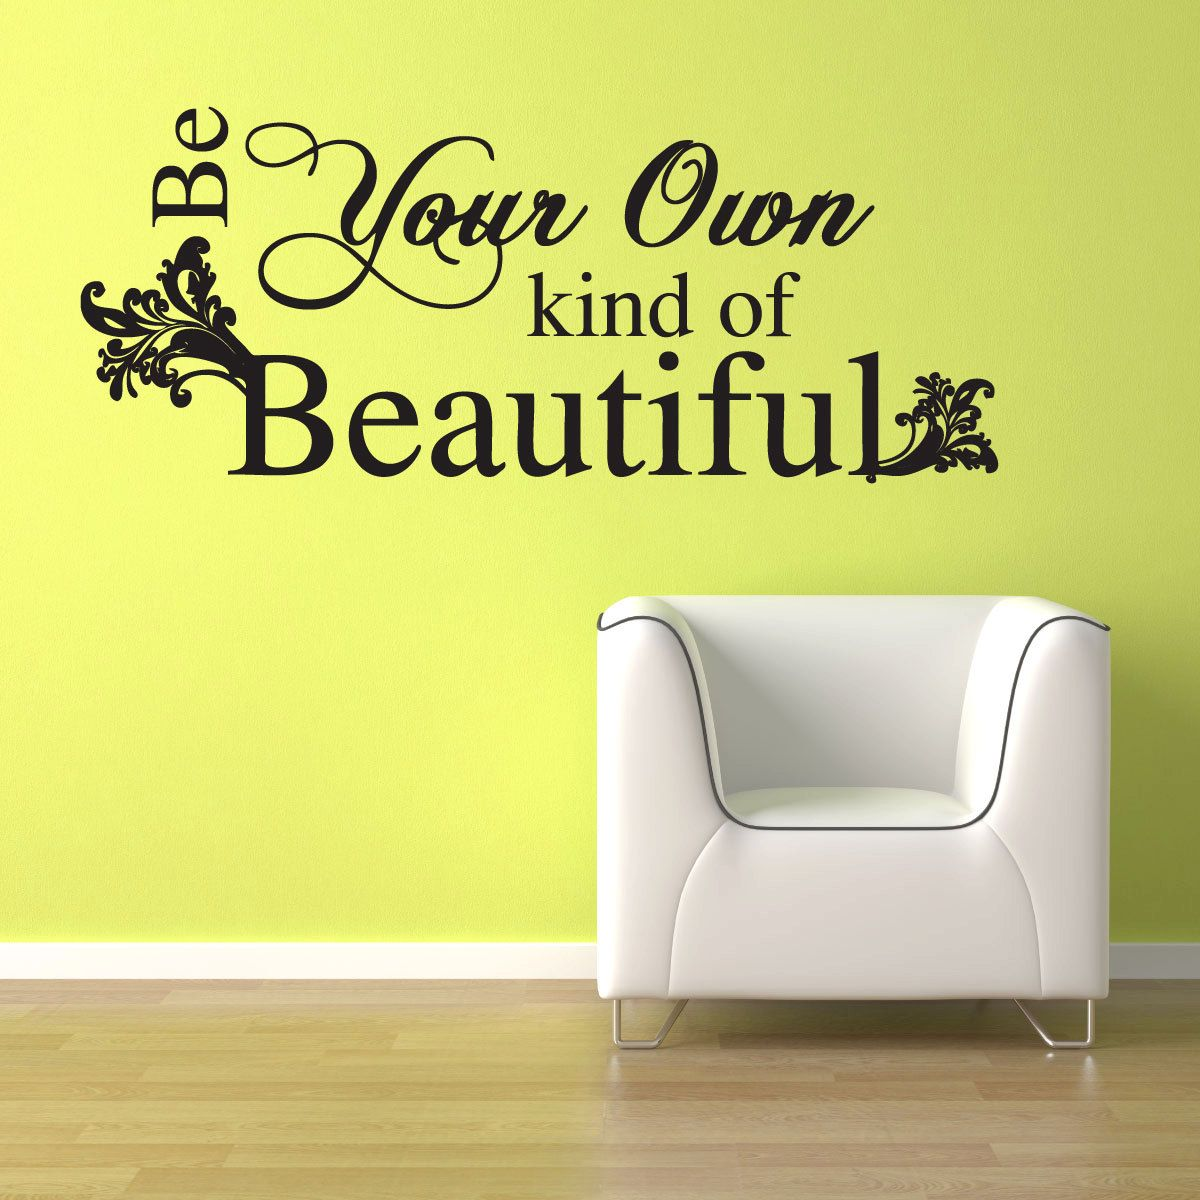 Marilyn Monroe Wall Decals: Toprate(TM) A Smile Is the Best Makeup ...